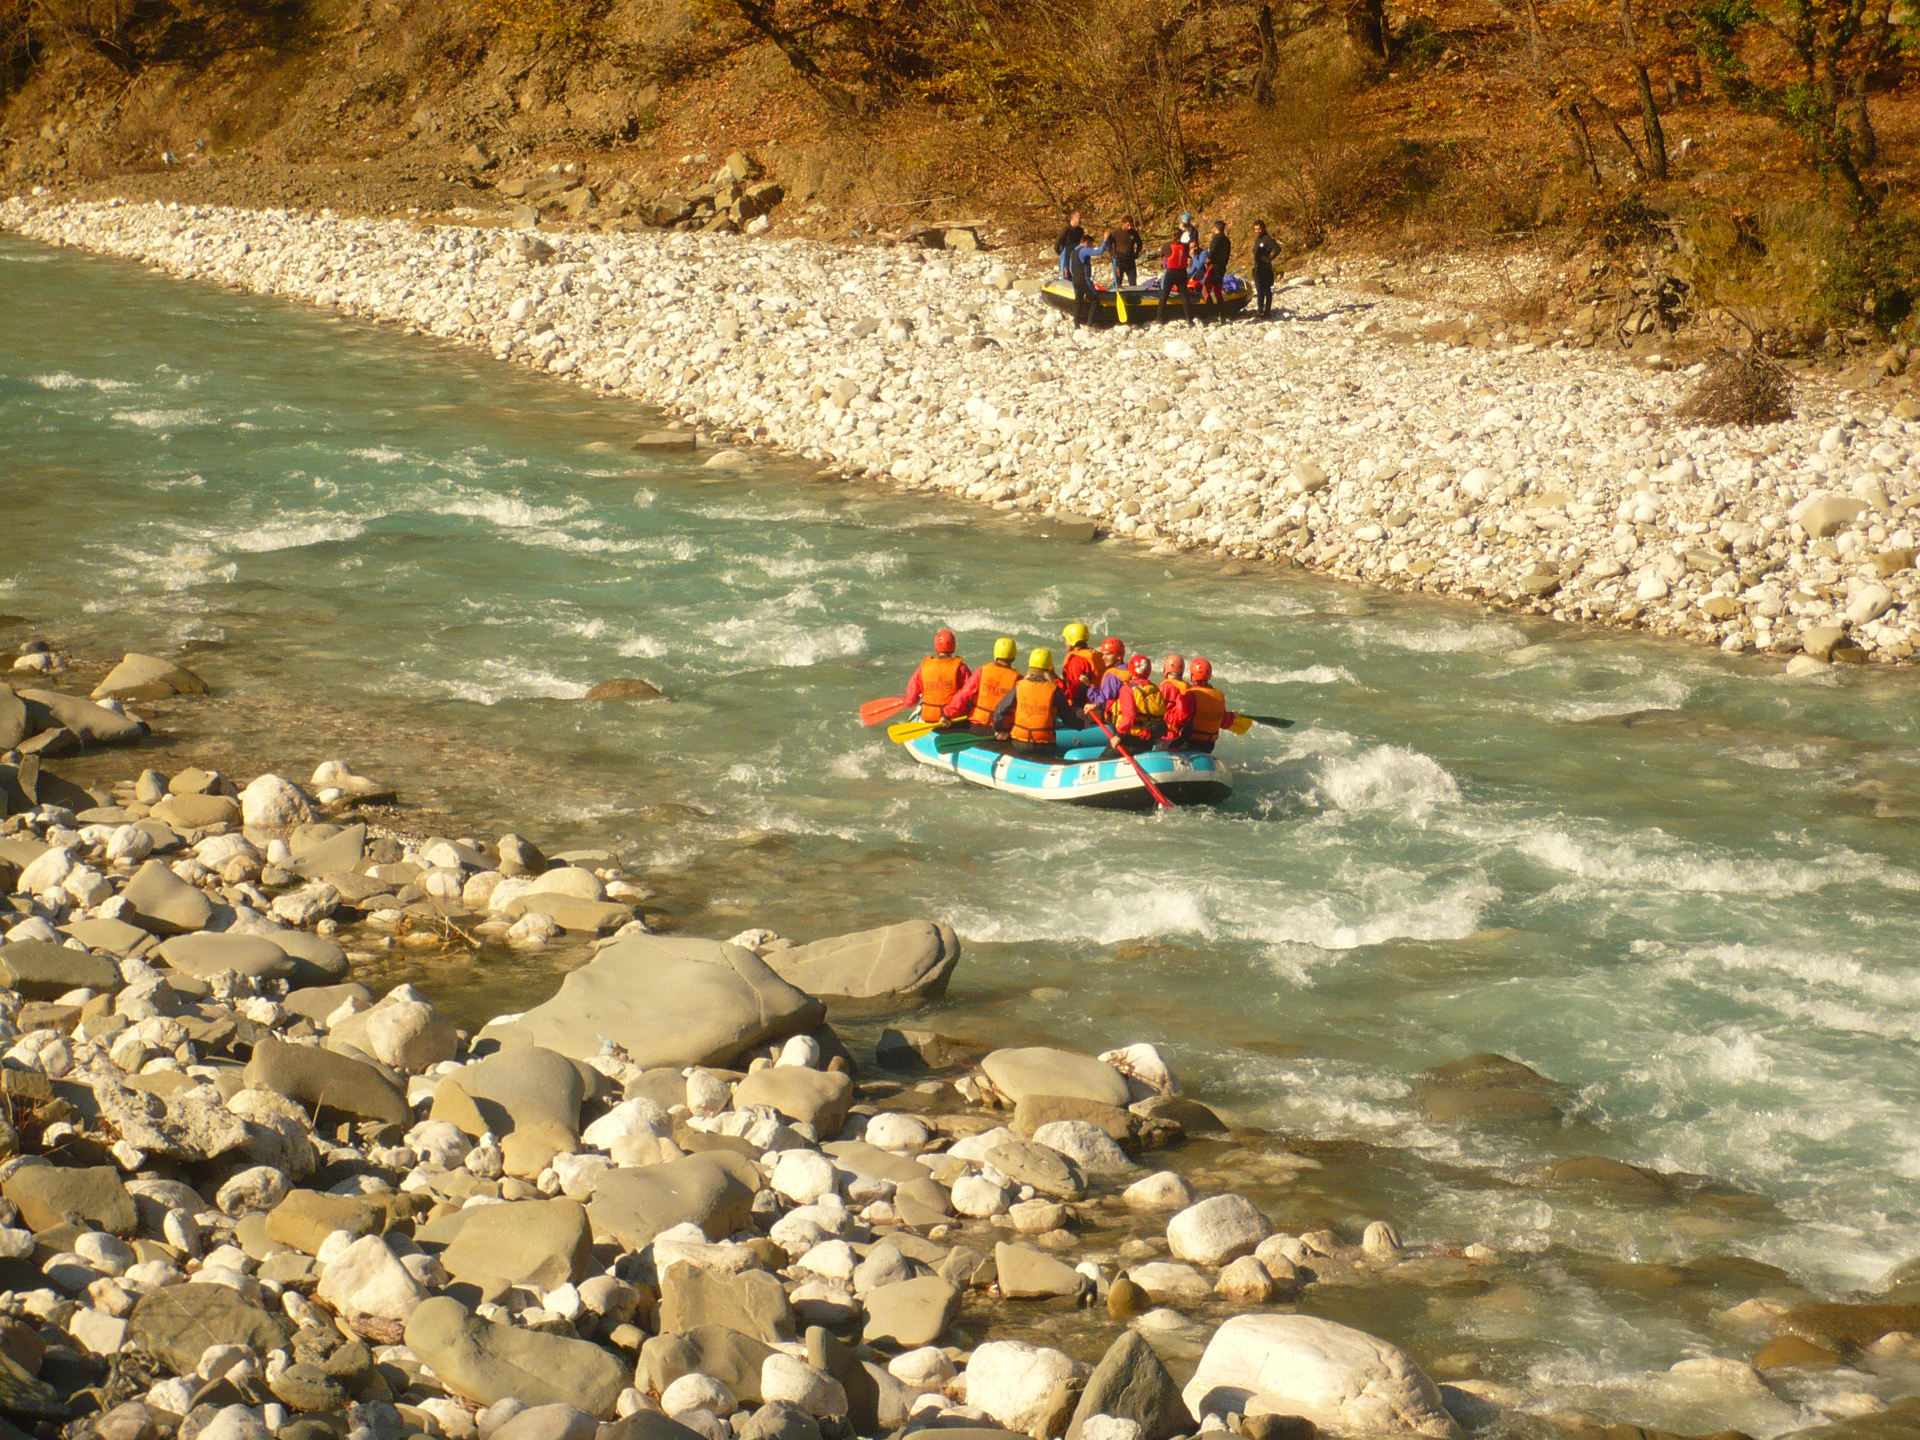 Rafting in river Aracthos, Epirus